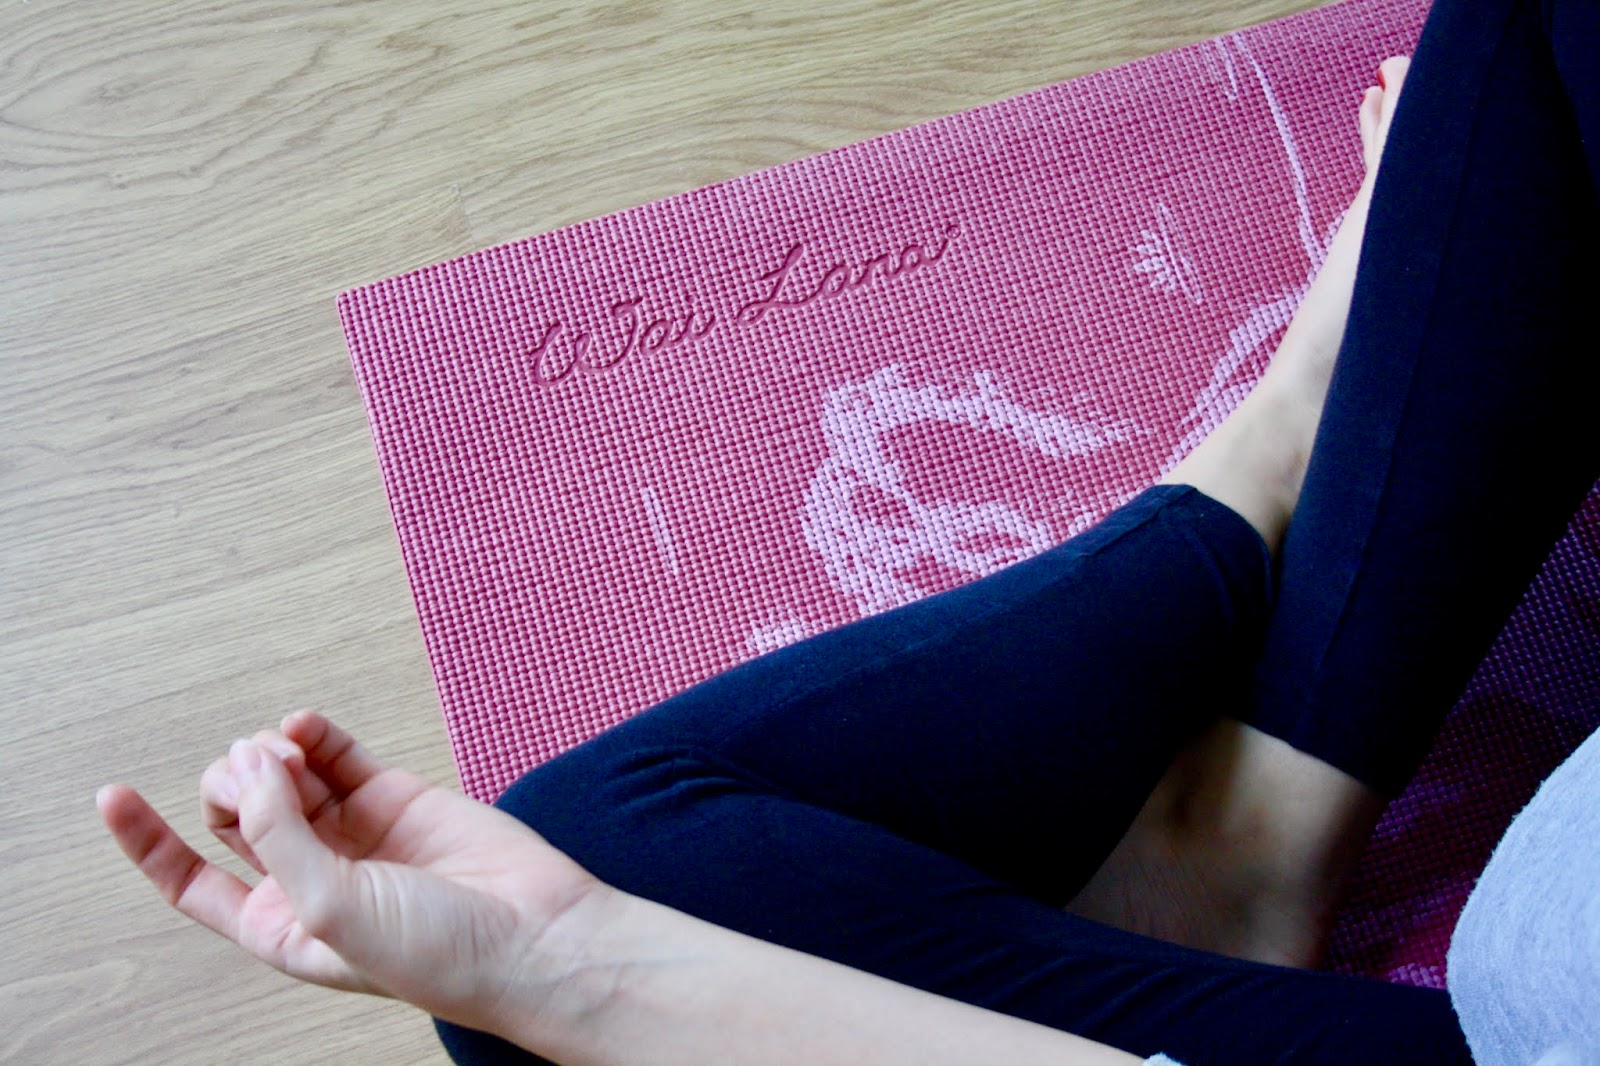 close up of abbey's crossed legs on a yoga mat, her hands in the mudra position